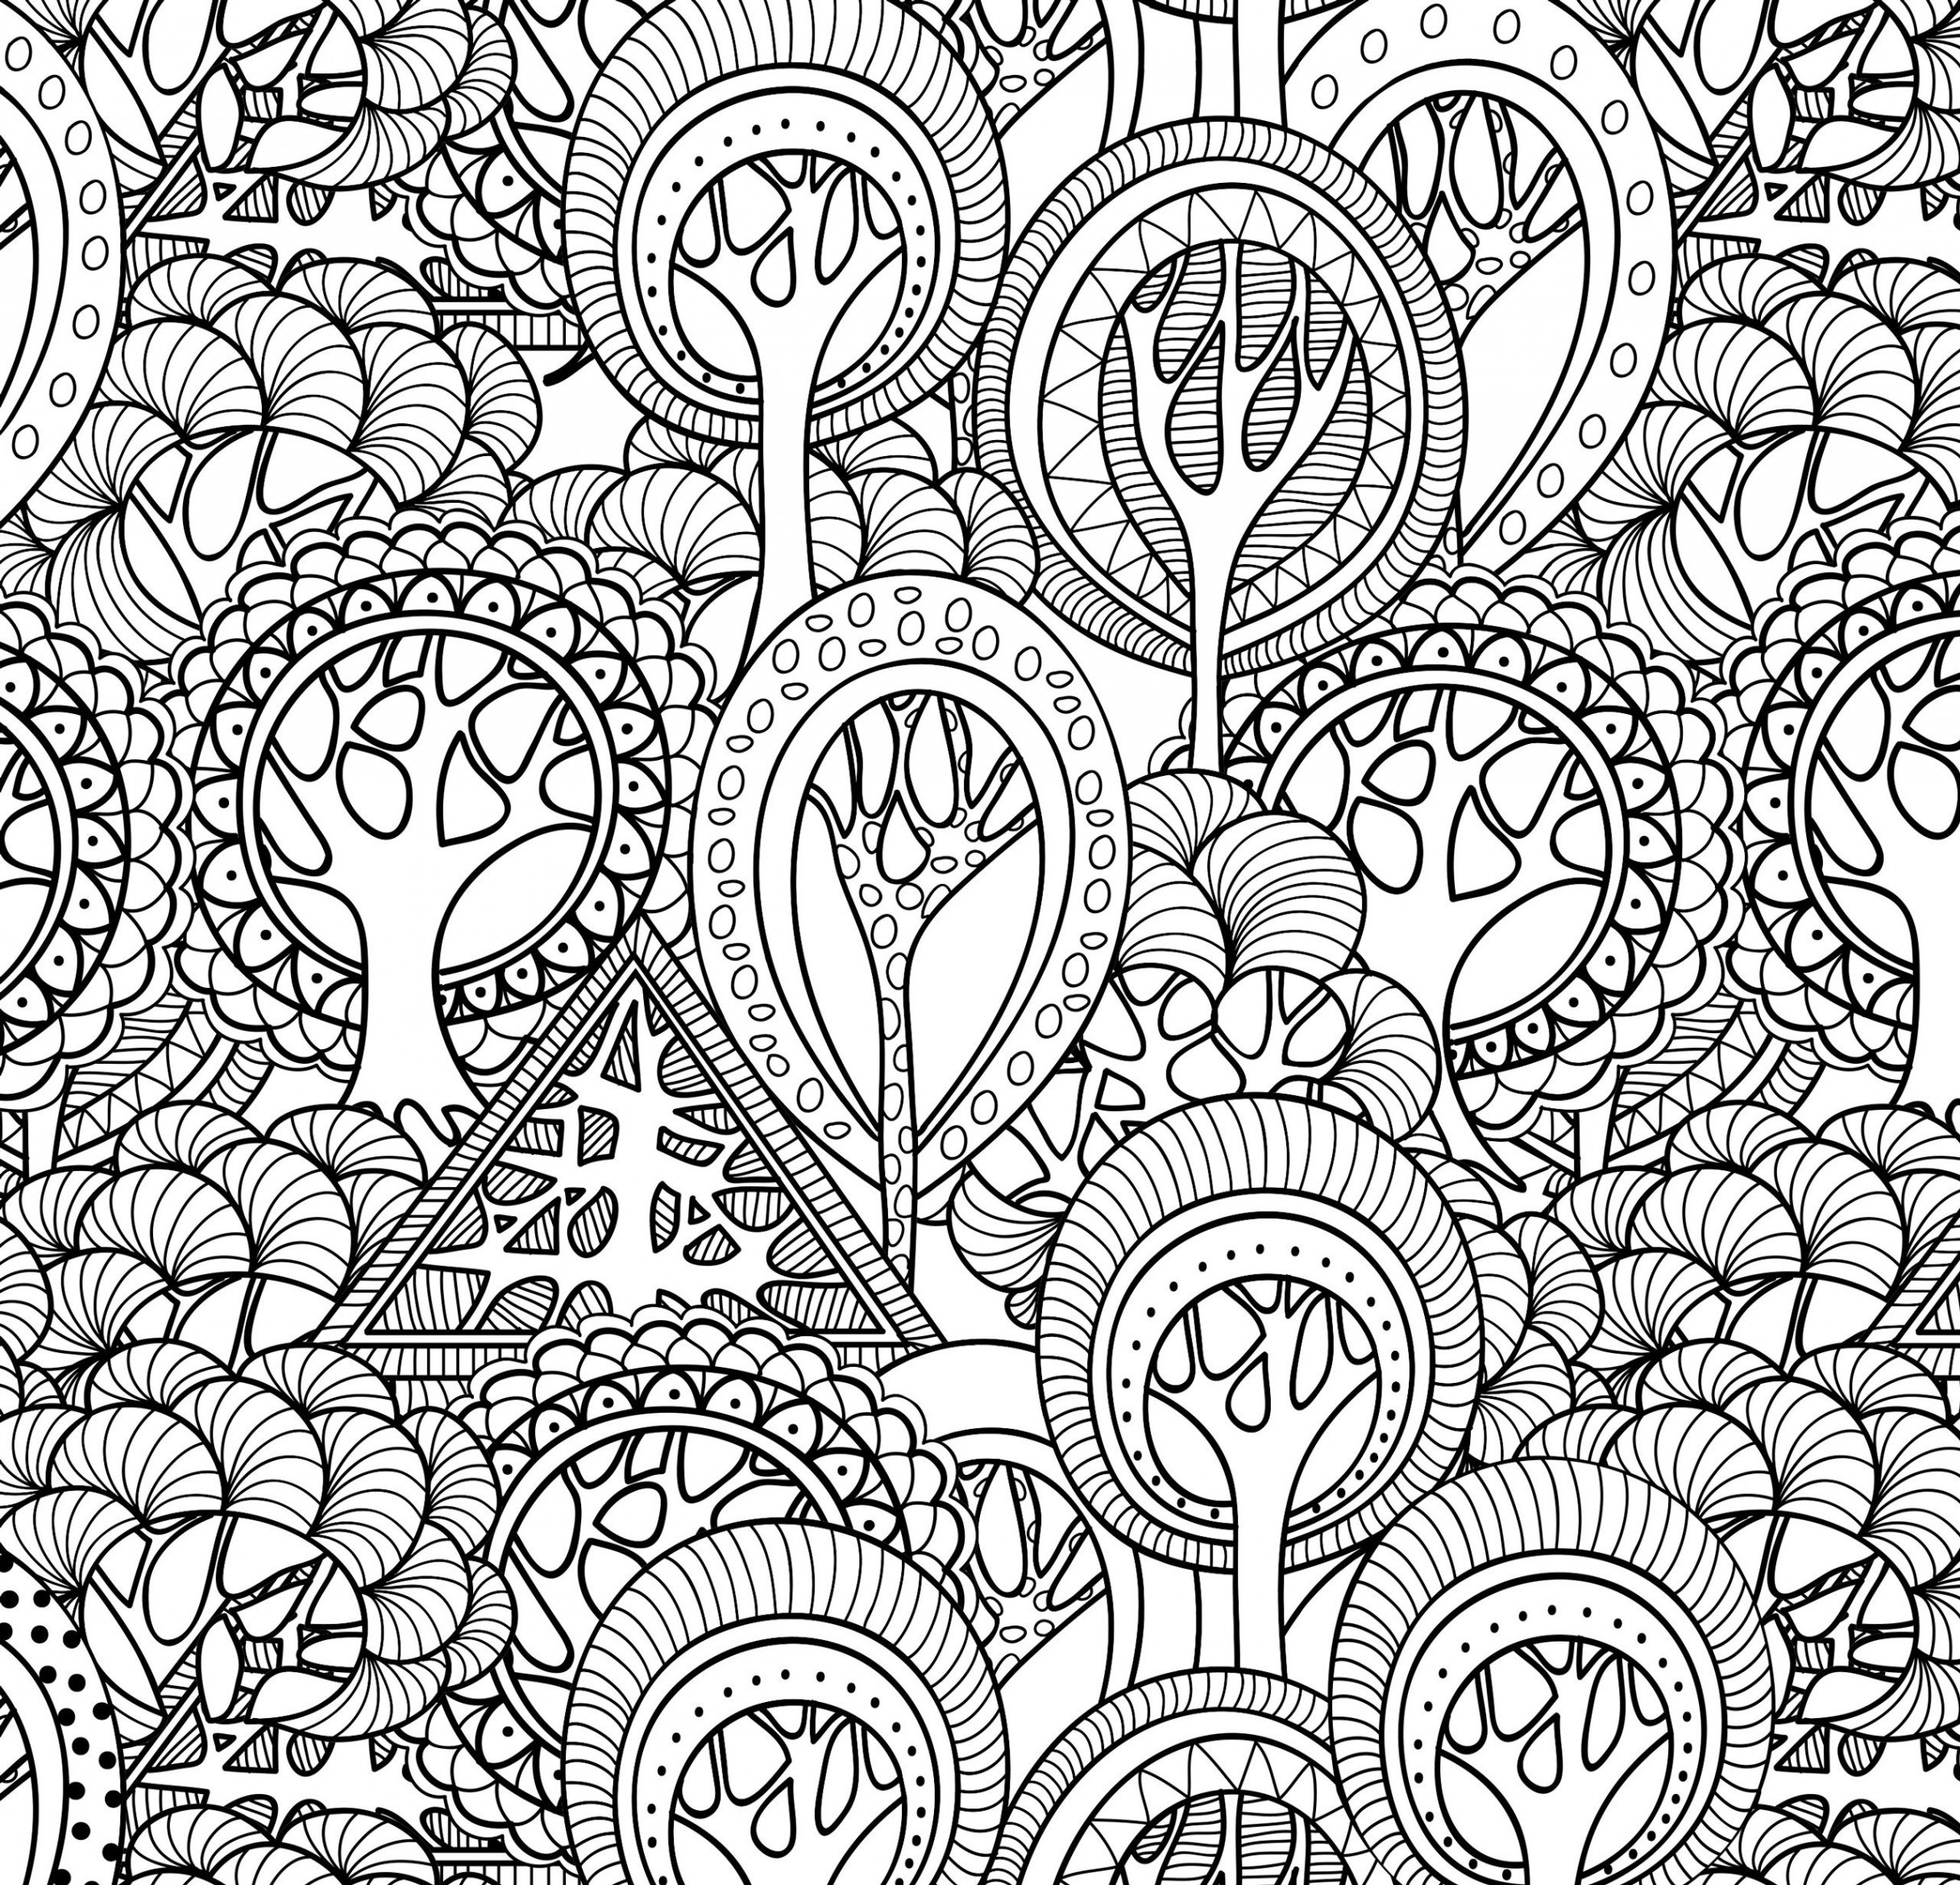 volkswagen flower vase of free flower coloring pages advanced coloring pages flowers 2019 in free flower coloring pages 34 inspirational coloring sheets flowers cloud9vegas